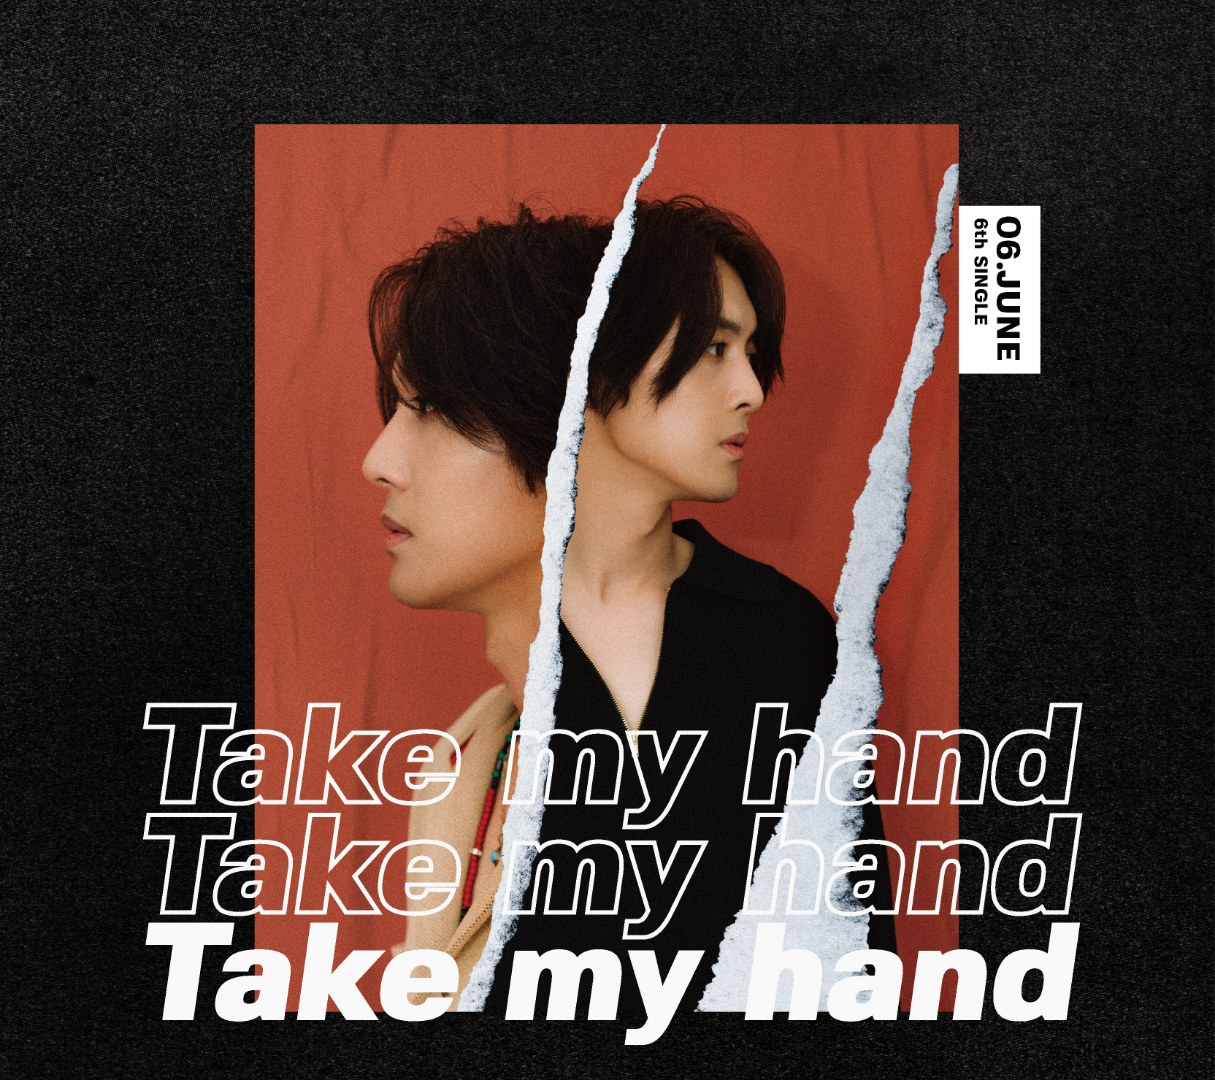 Take my hand Type B